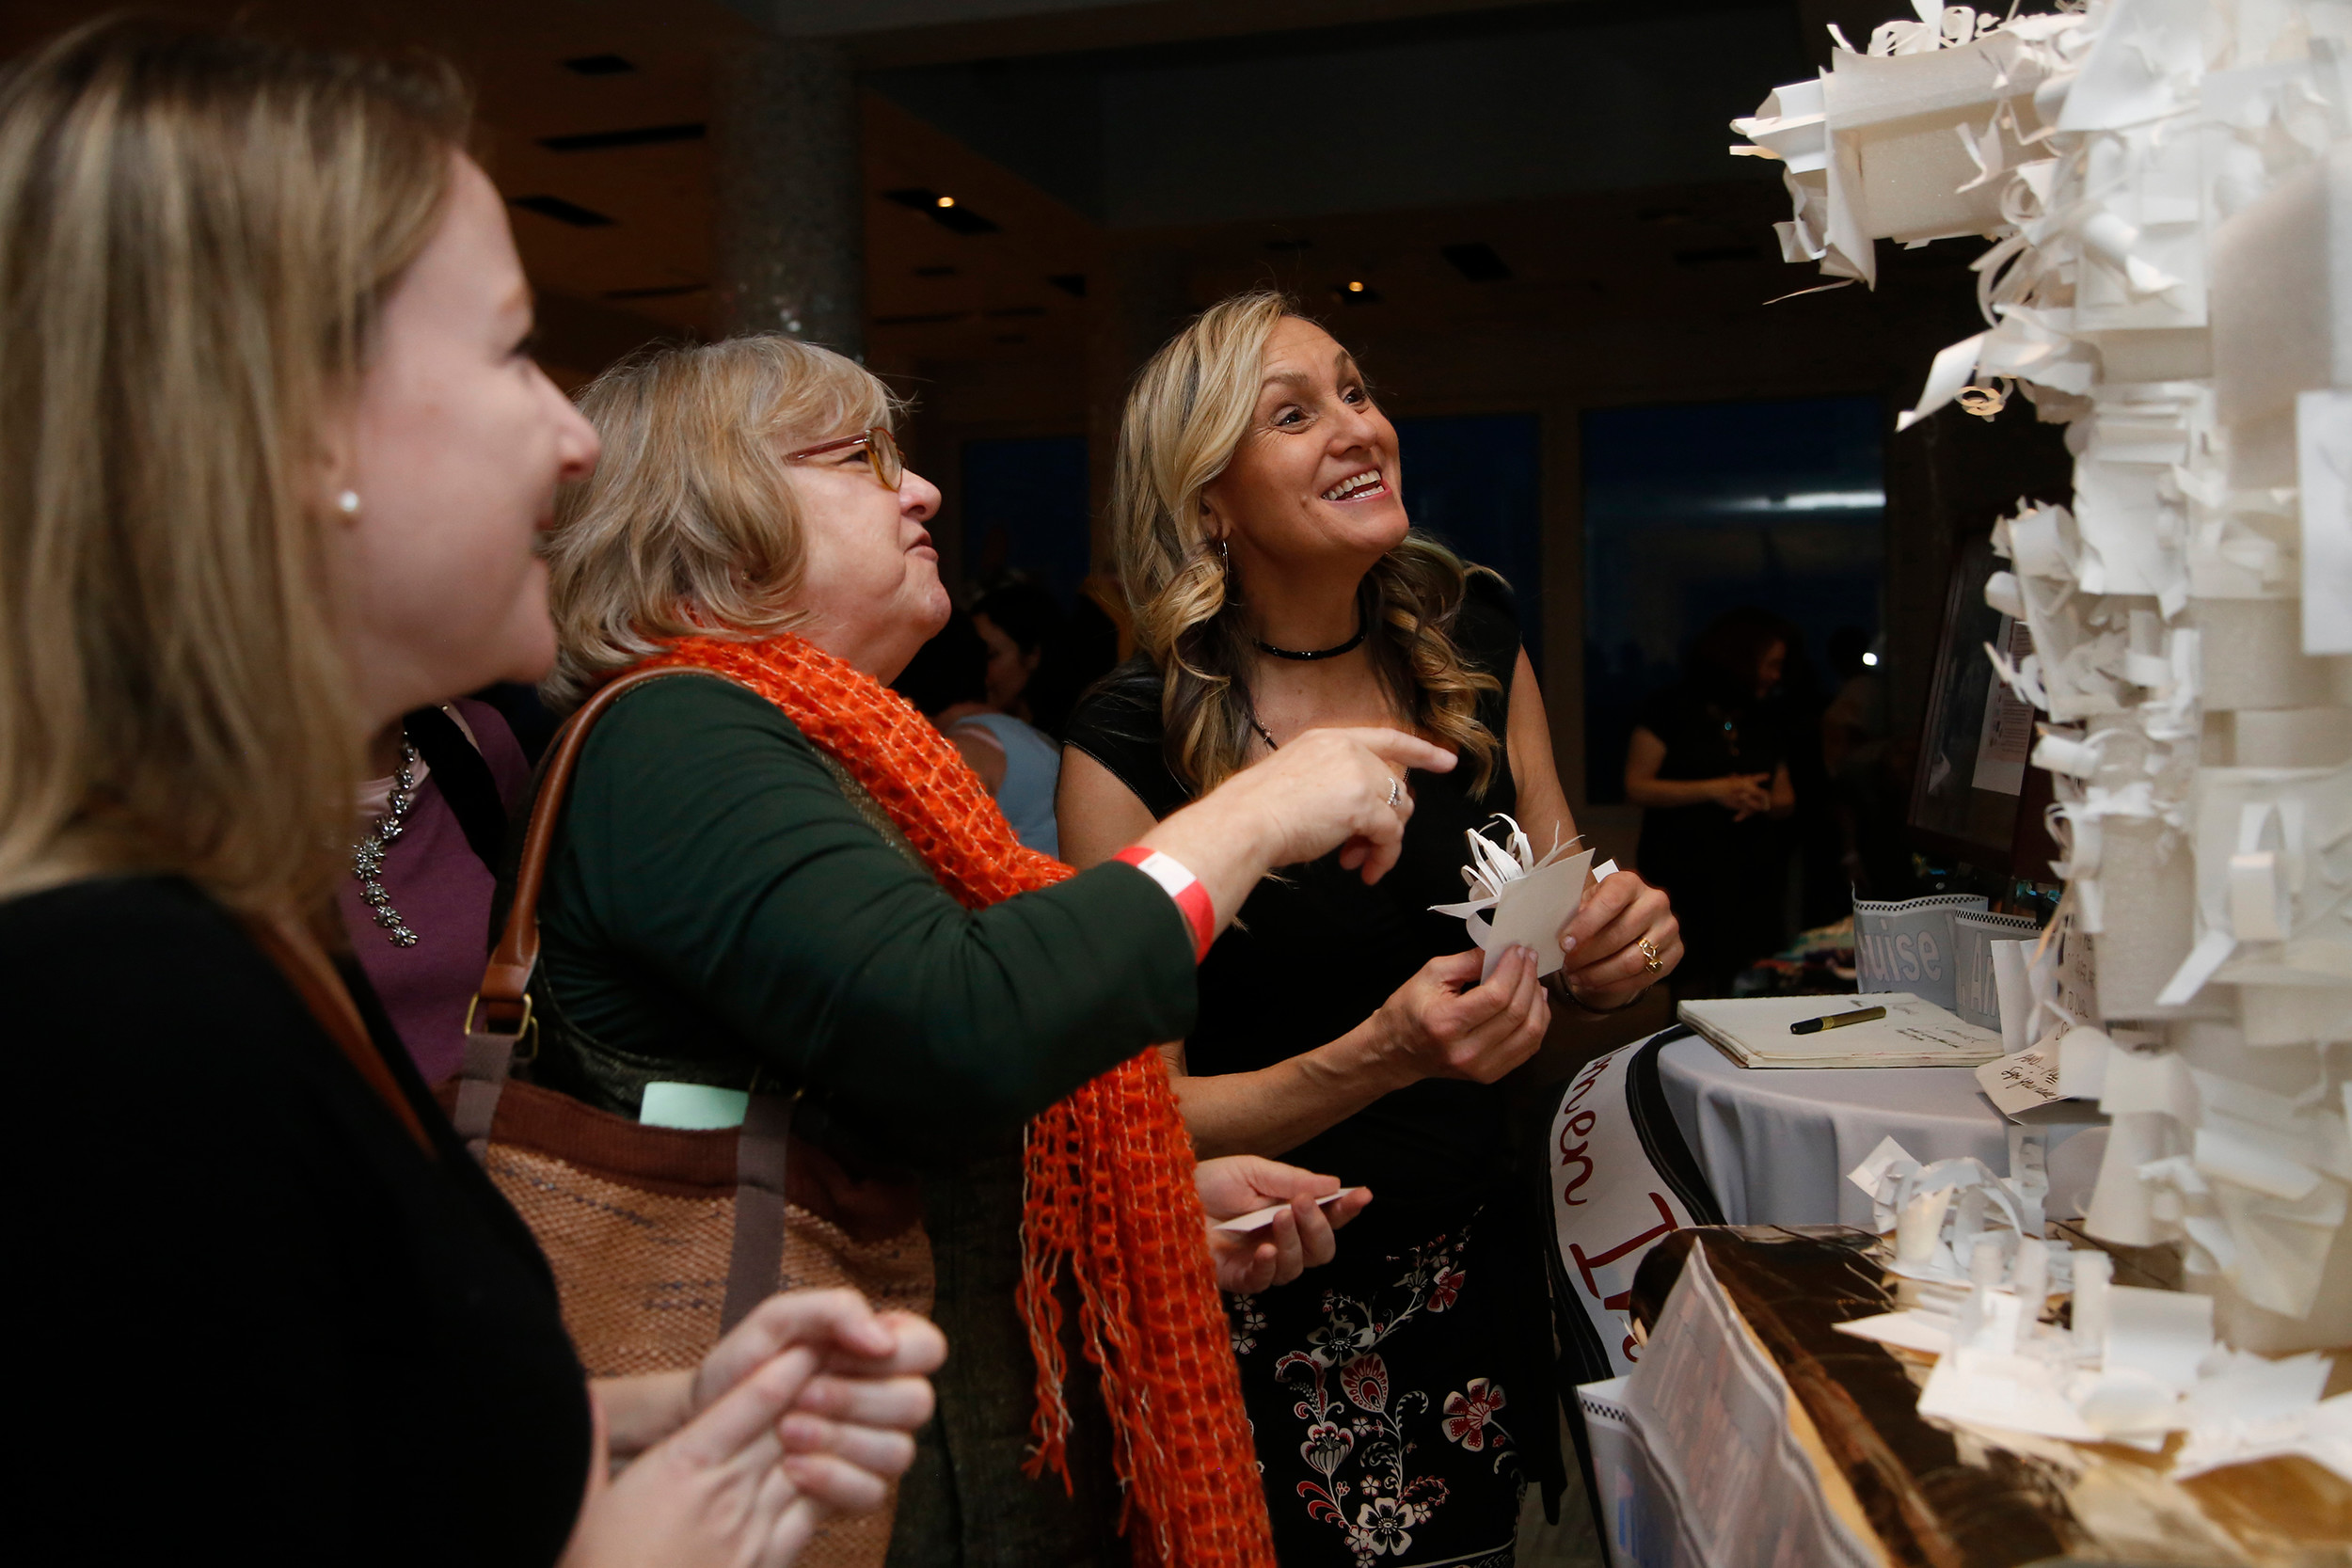 Ayla O'Neill, far left, and her mother, Karen O'Neill, helped artist Laura O'Shaughnessy Swan finish a Louise Nevelson-inspired sculpture at the first annual Women in the Arts awards ceremony at the Allegria Hotel on March 24.